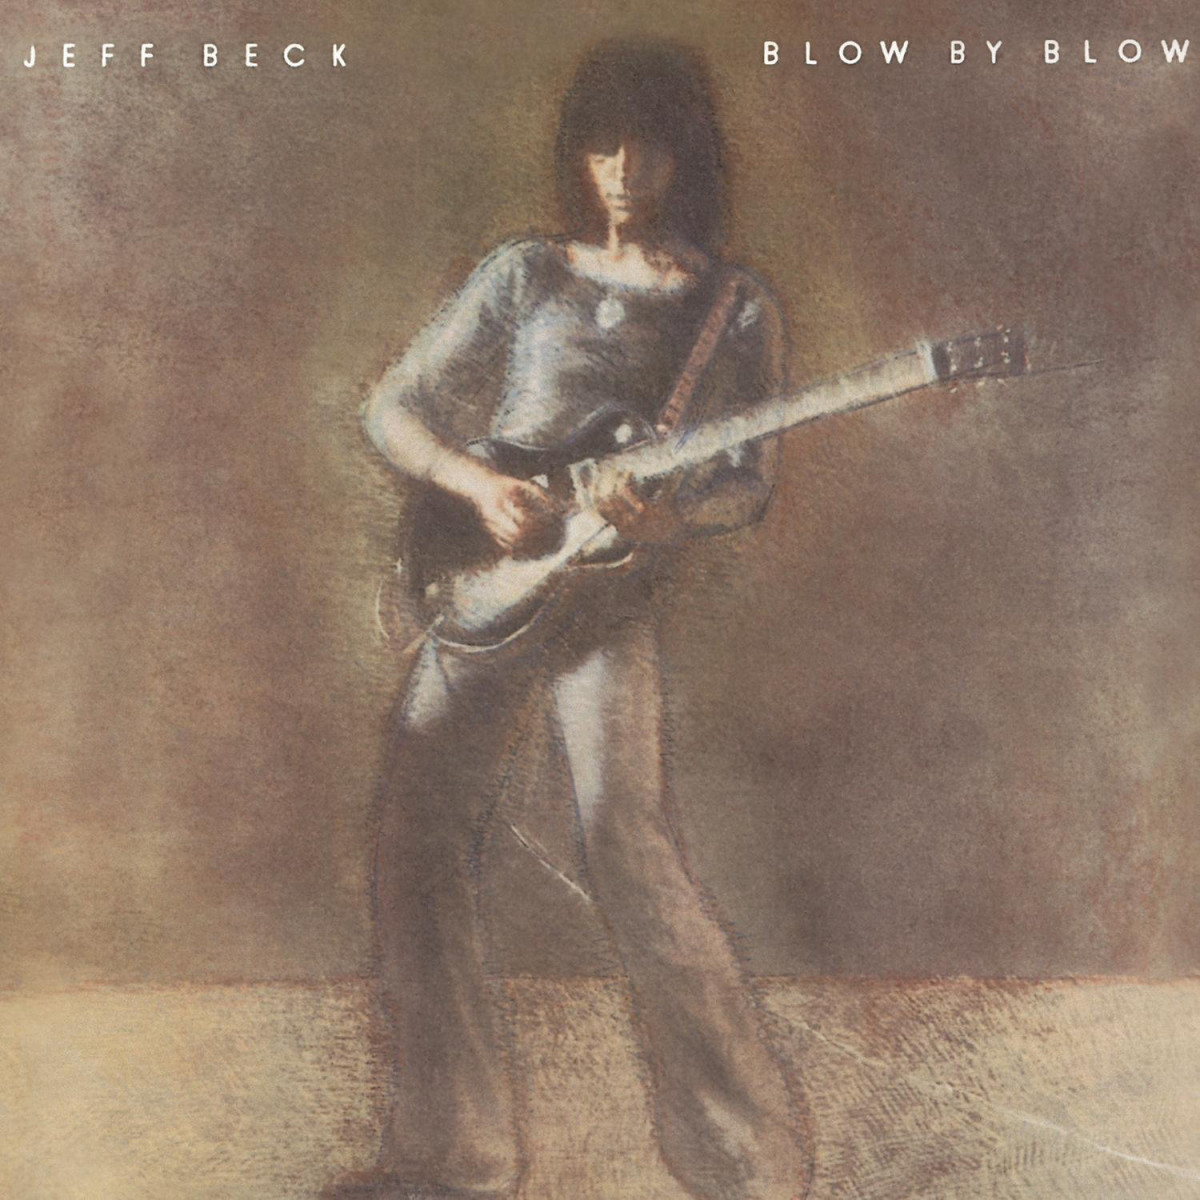 Jeff Beck, Blow by Blow